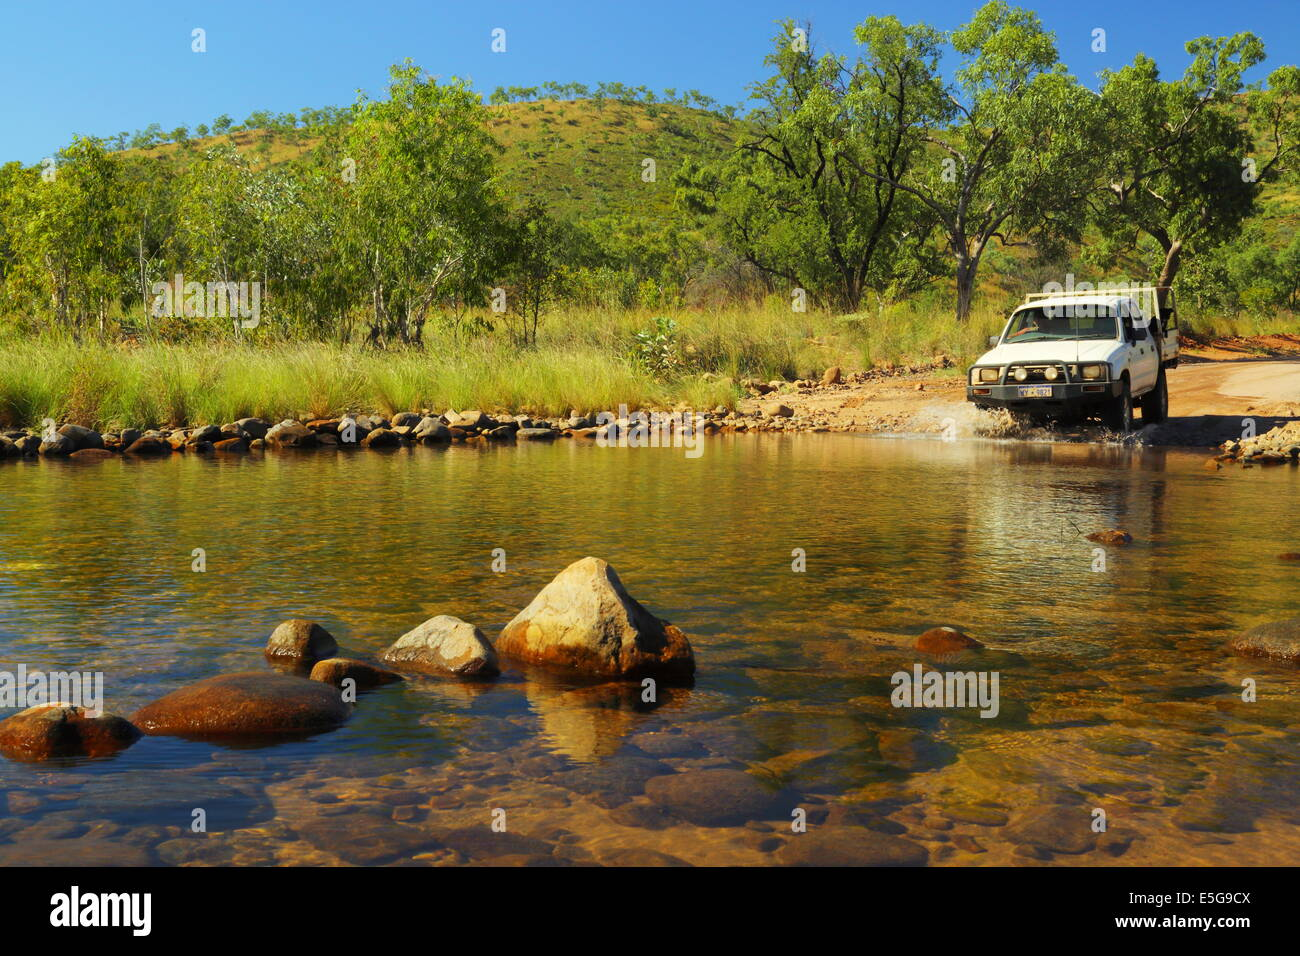 A 4WD vehicle crosses a small stream in the Kimberley region of Western Australia. - Stock Image